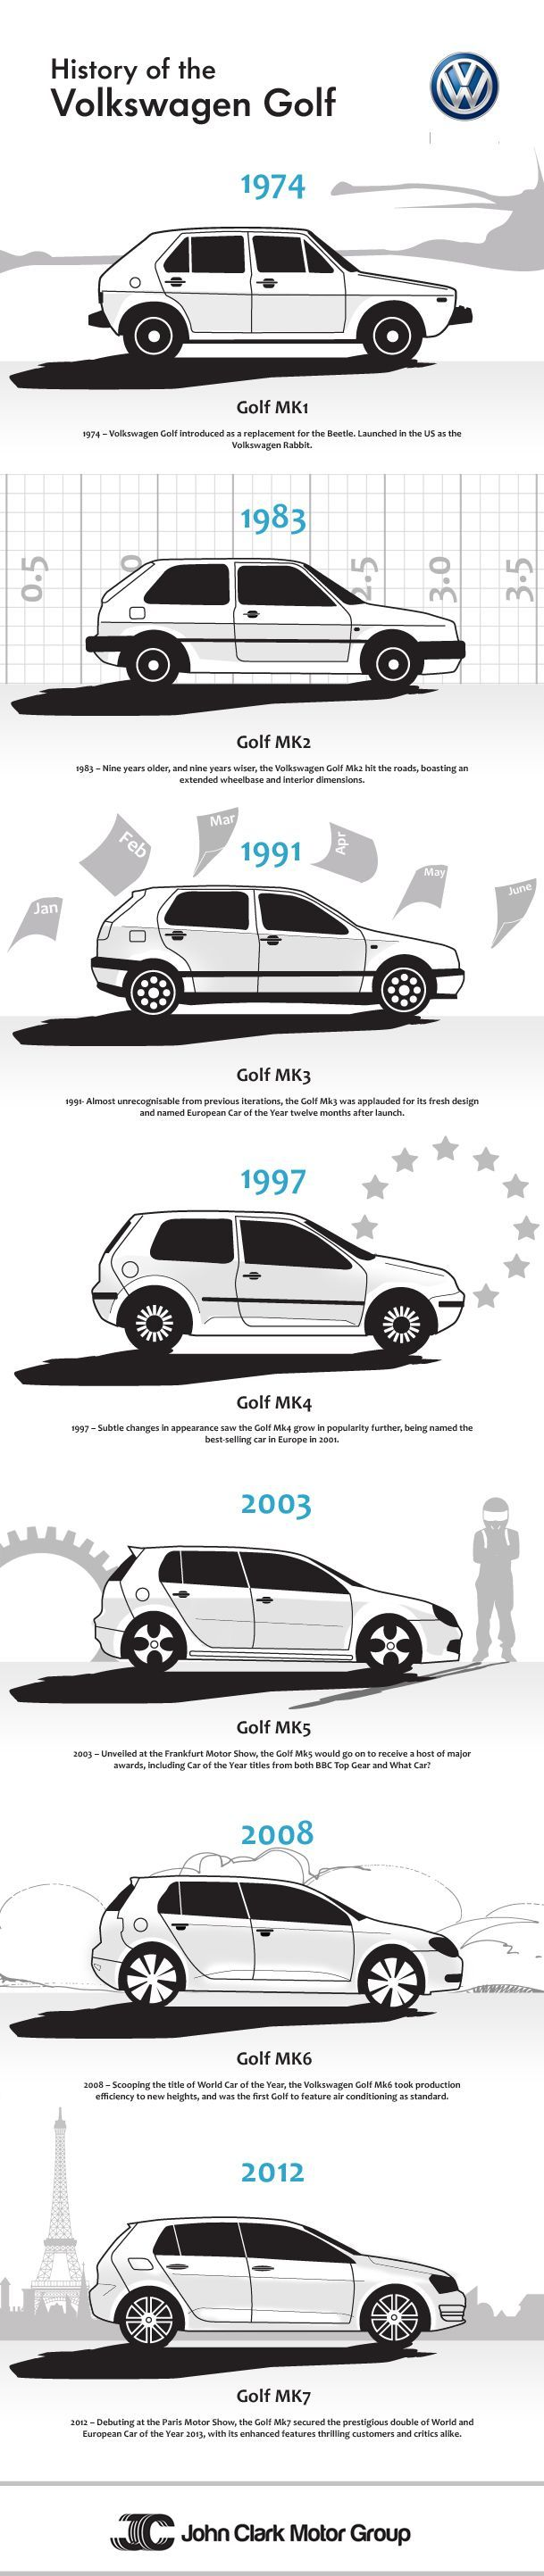 De Evolutie Van De Volkswagen Golf Volkswagen Golf Evolution